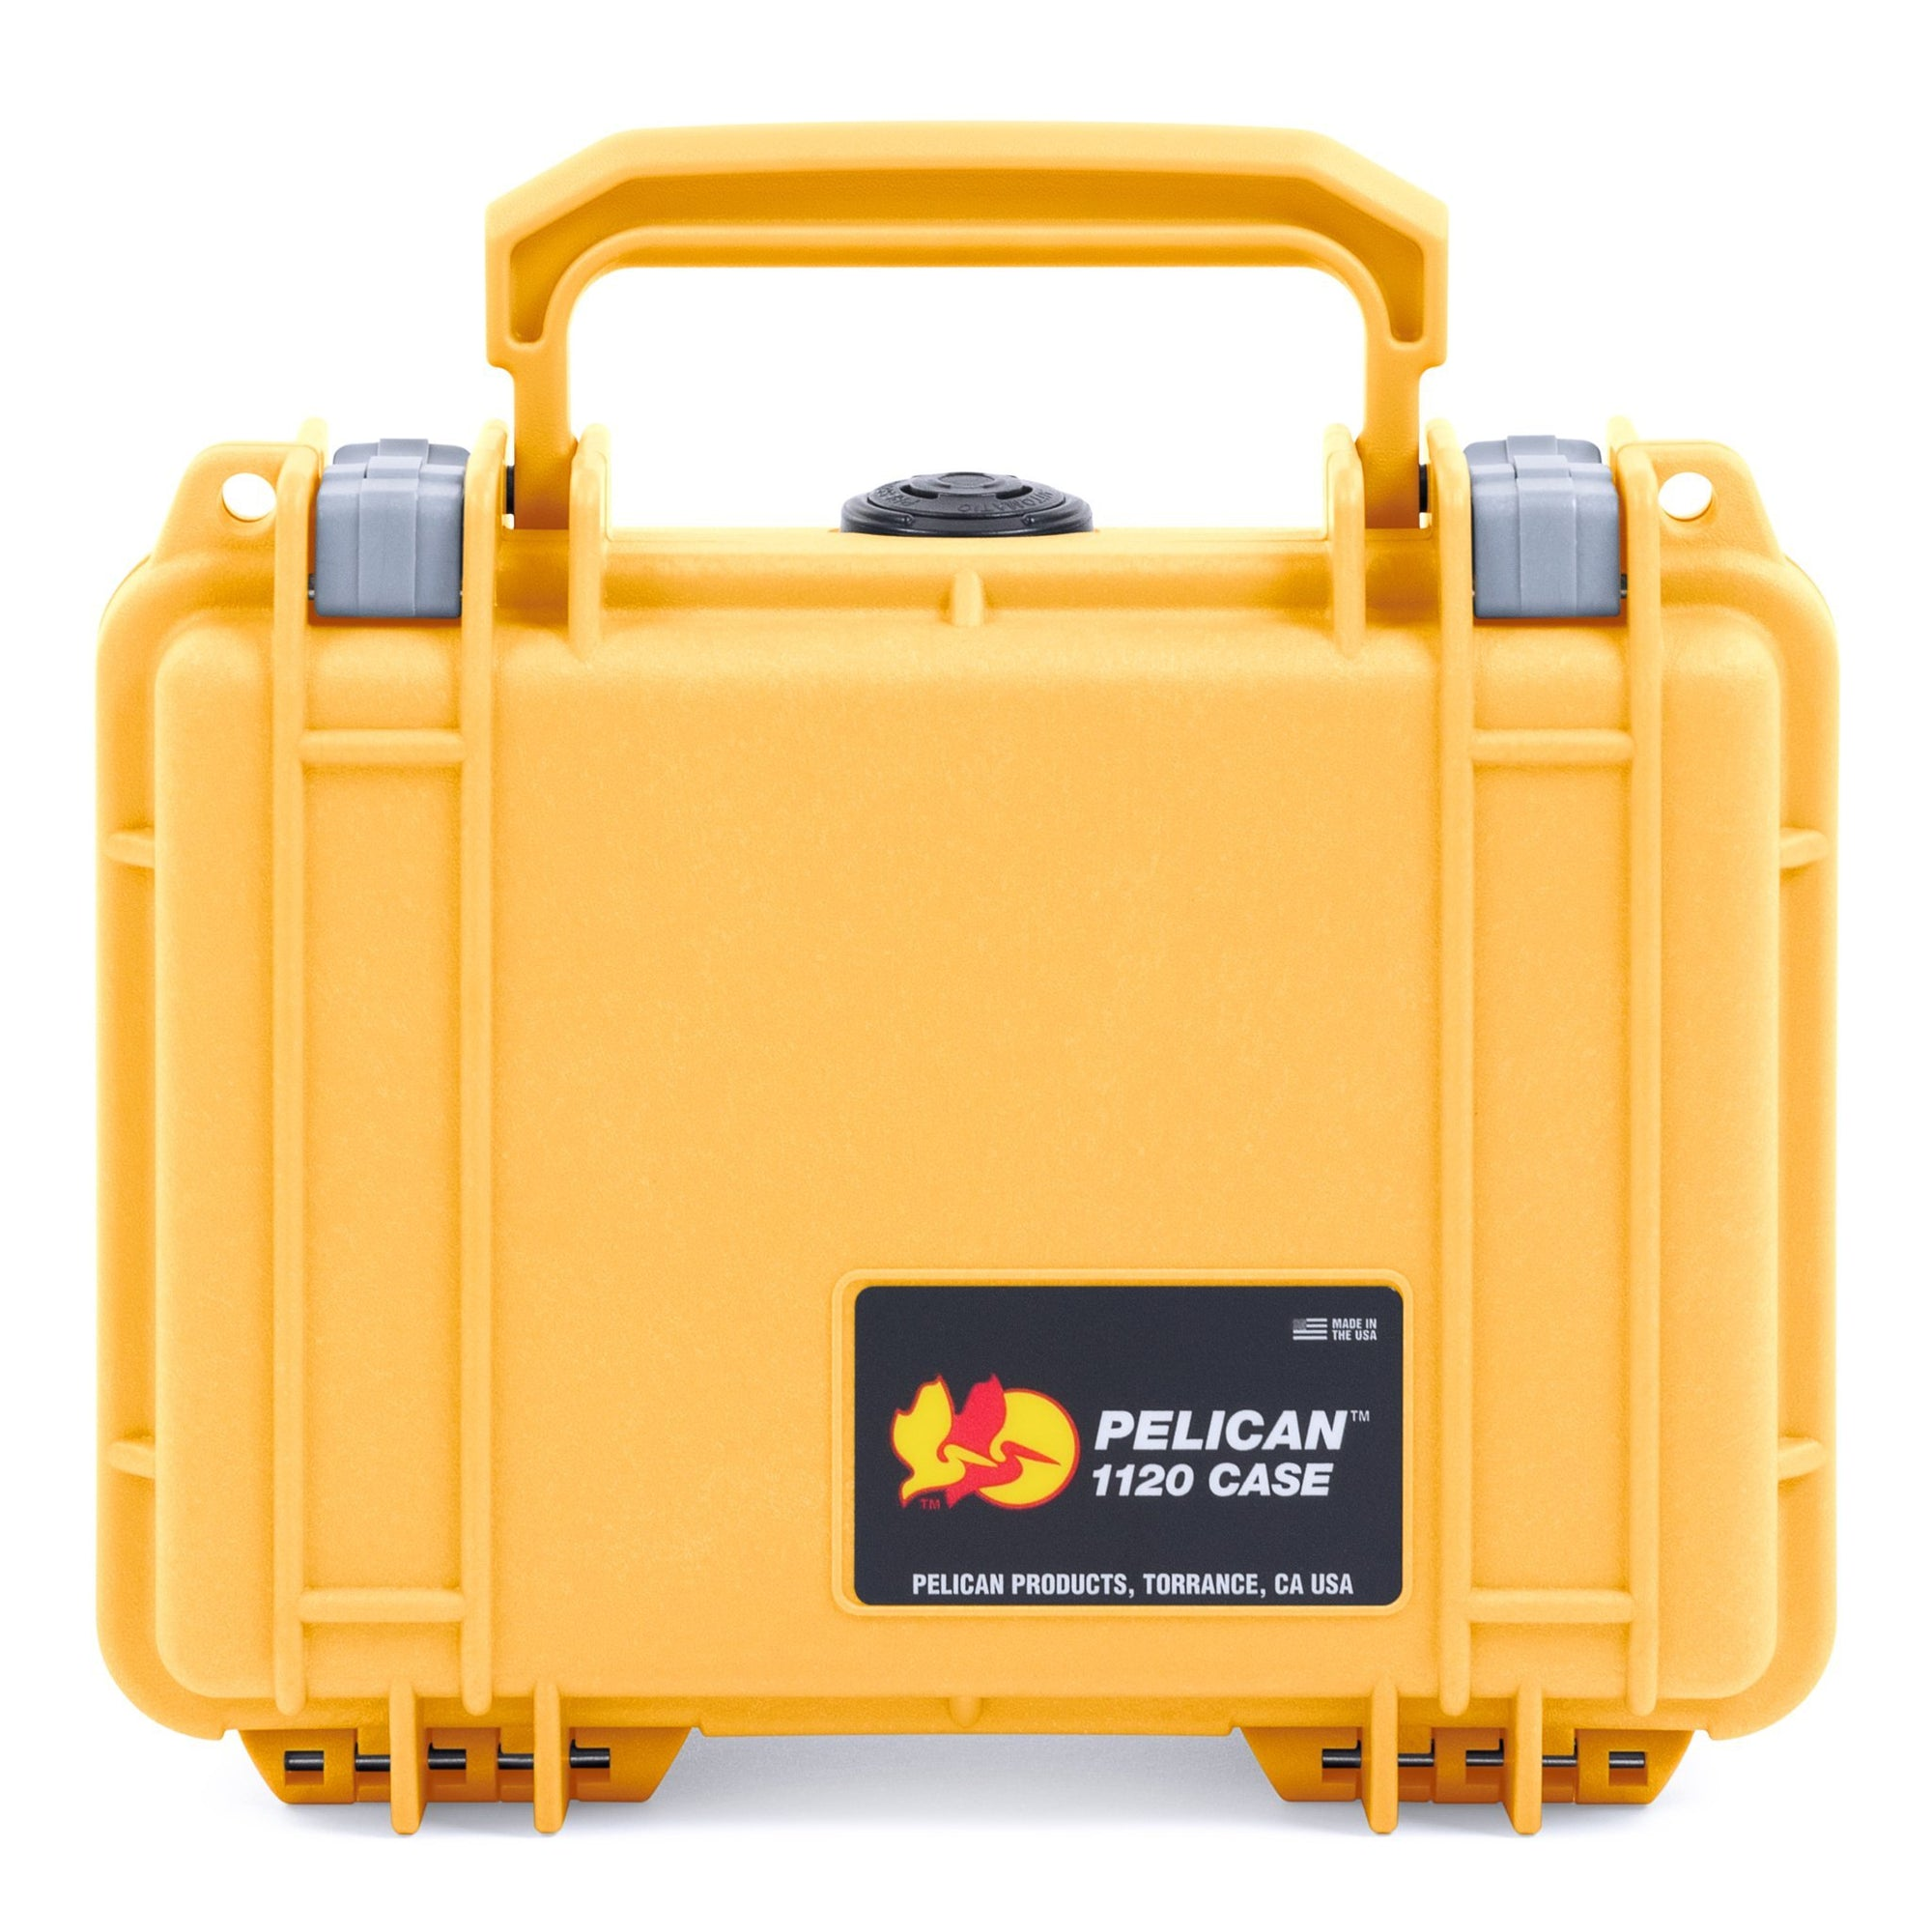 Pelican 1120 Case, Yellow with Silver Latches - Pelican Color Case